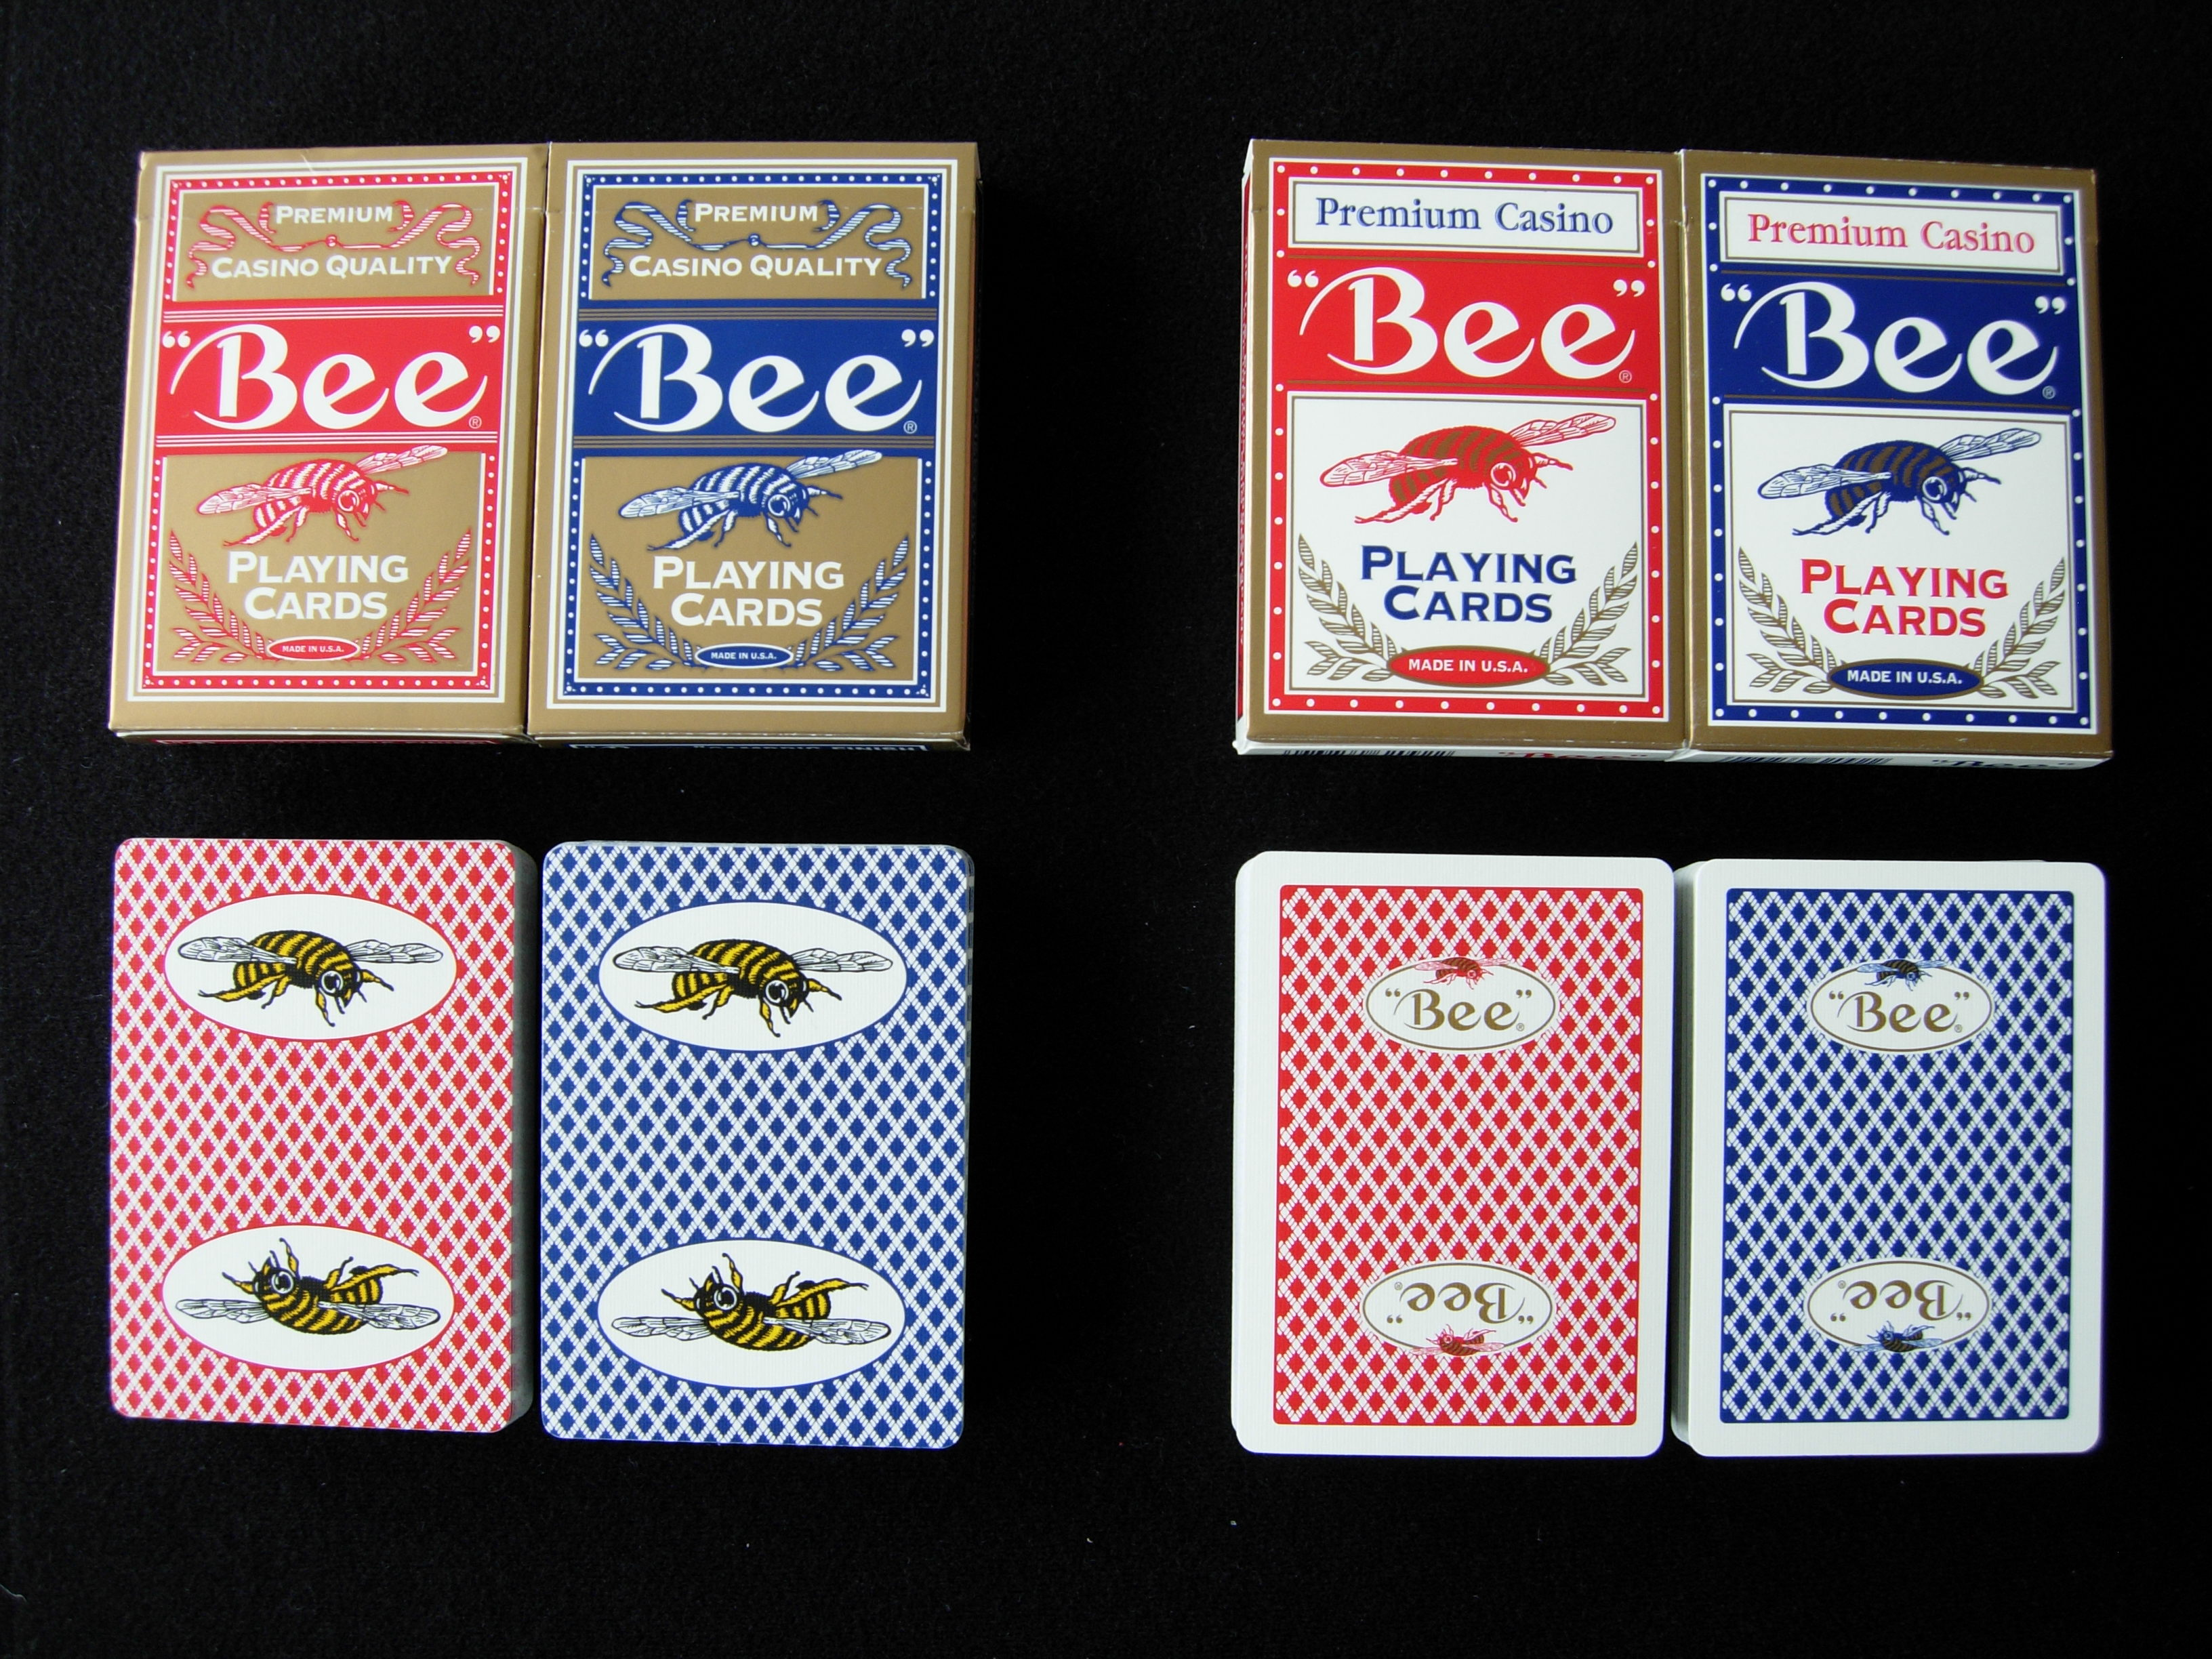 Bee casino cards sun cruz casino sc